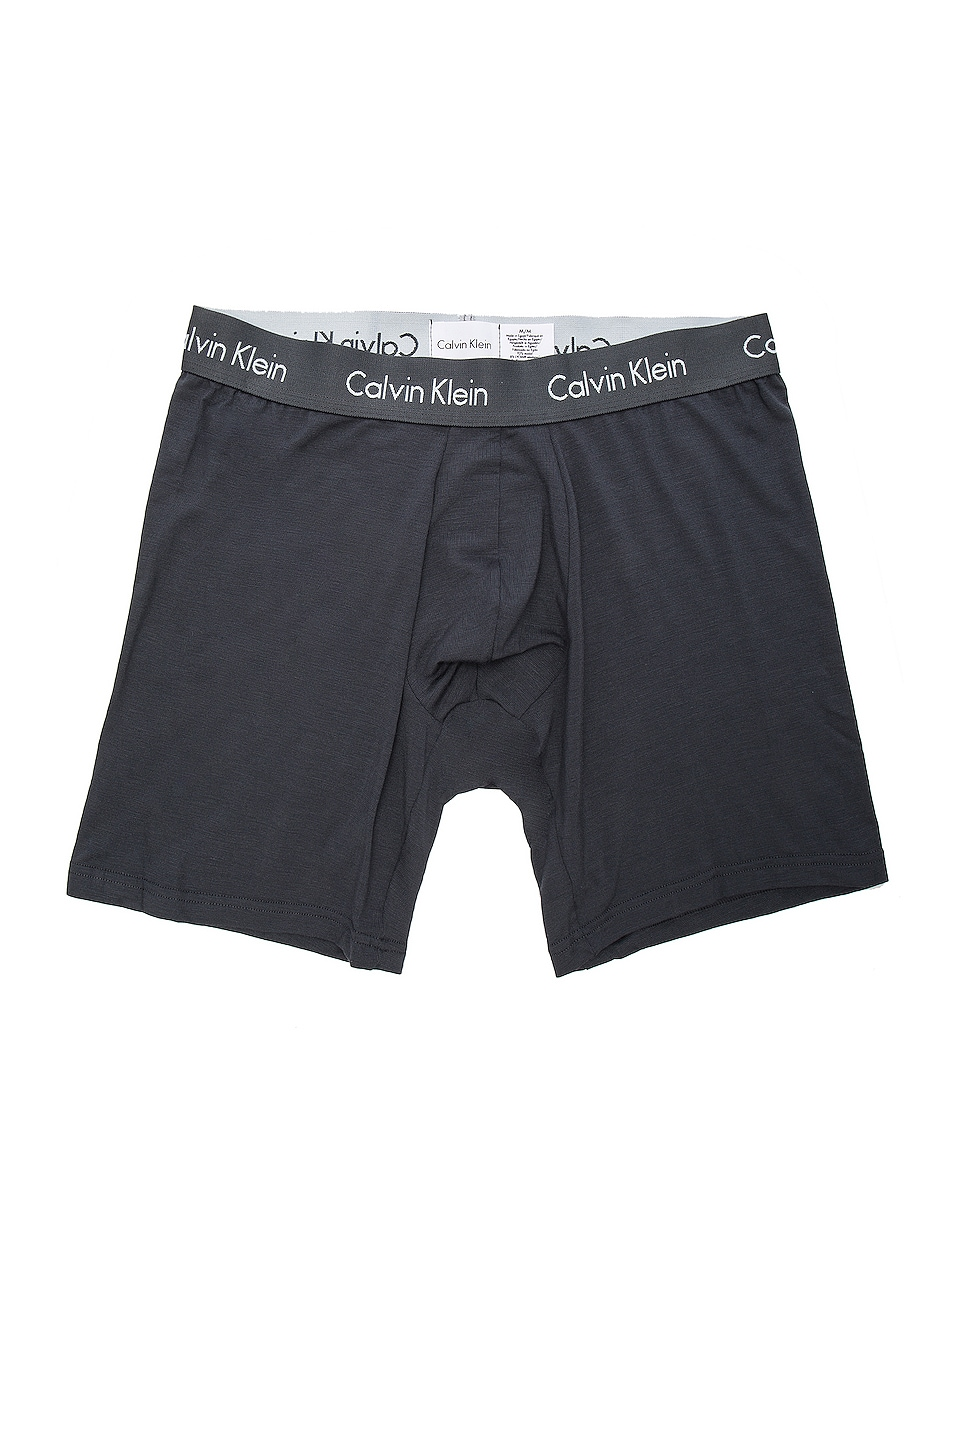 Calvin Klein Underwear Body Modal Boxer Briefs in Mink